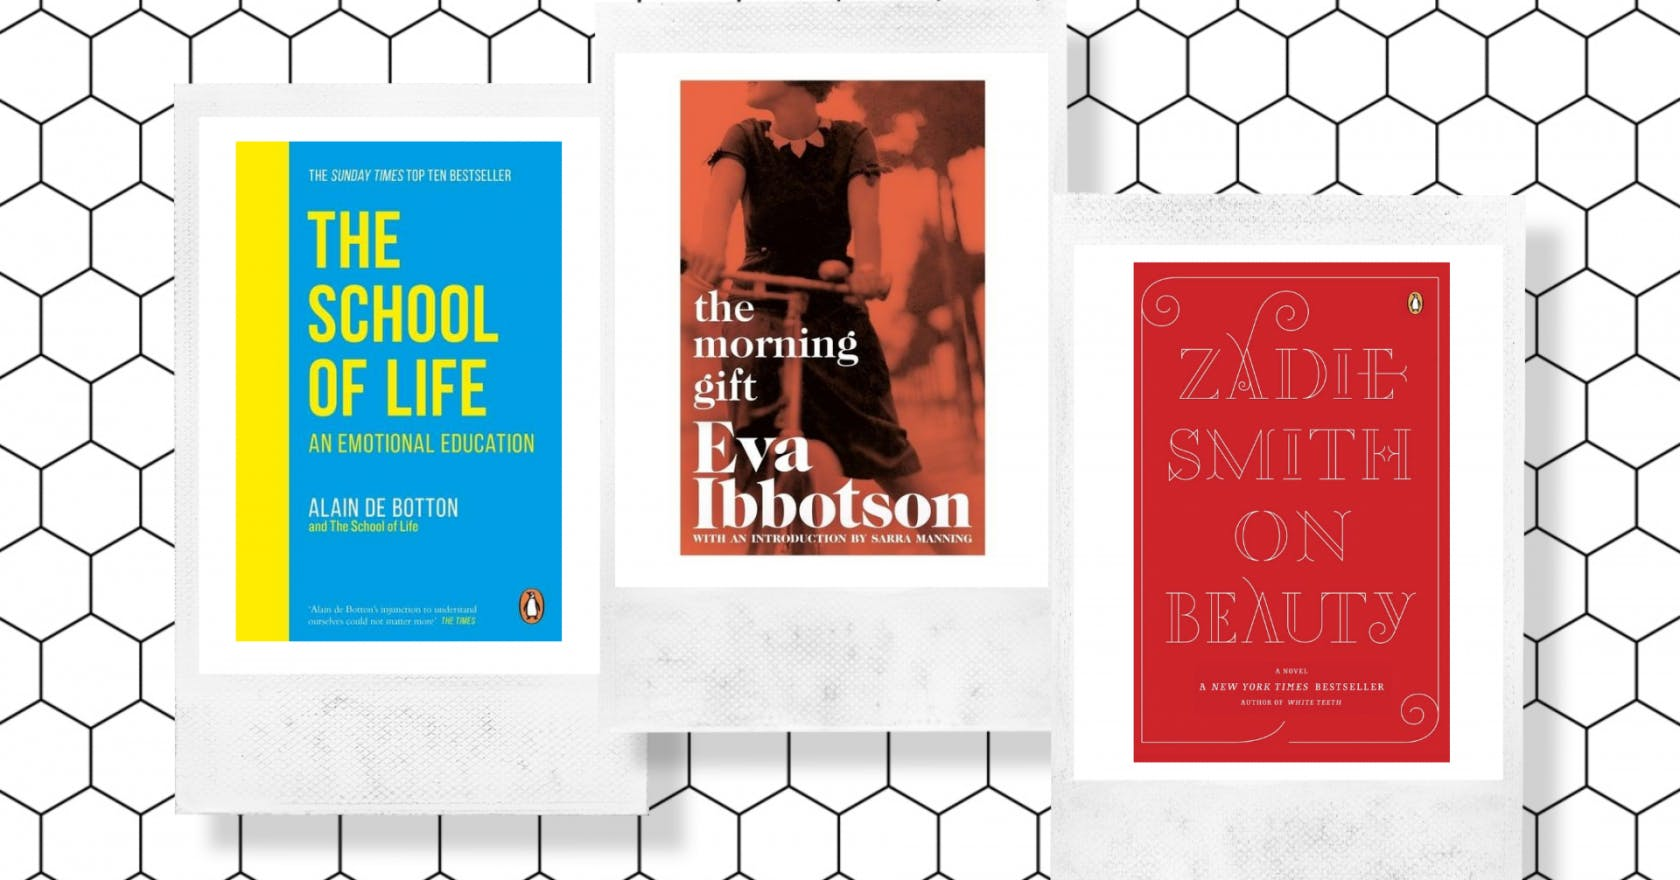 Don't know what to read next? Here are 9 brilliant books we're reading in lockdown